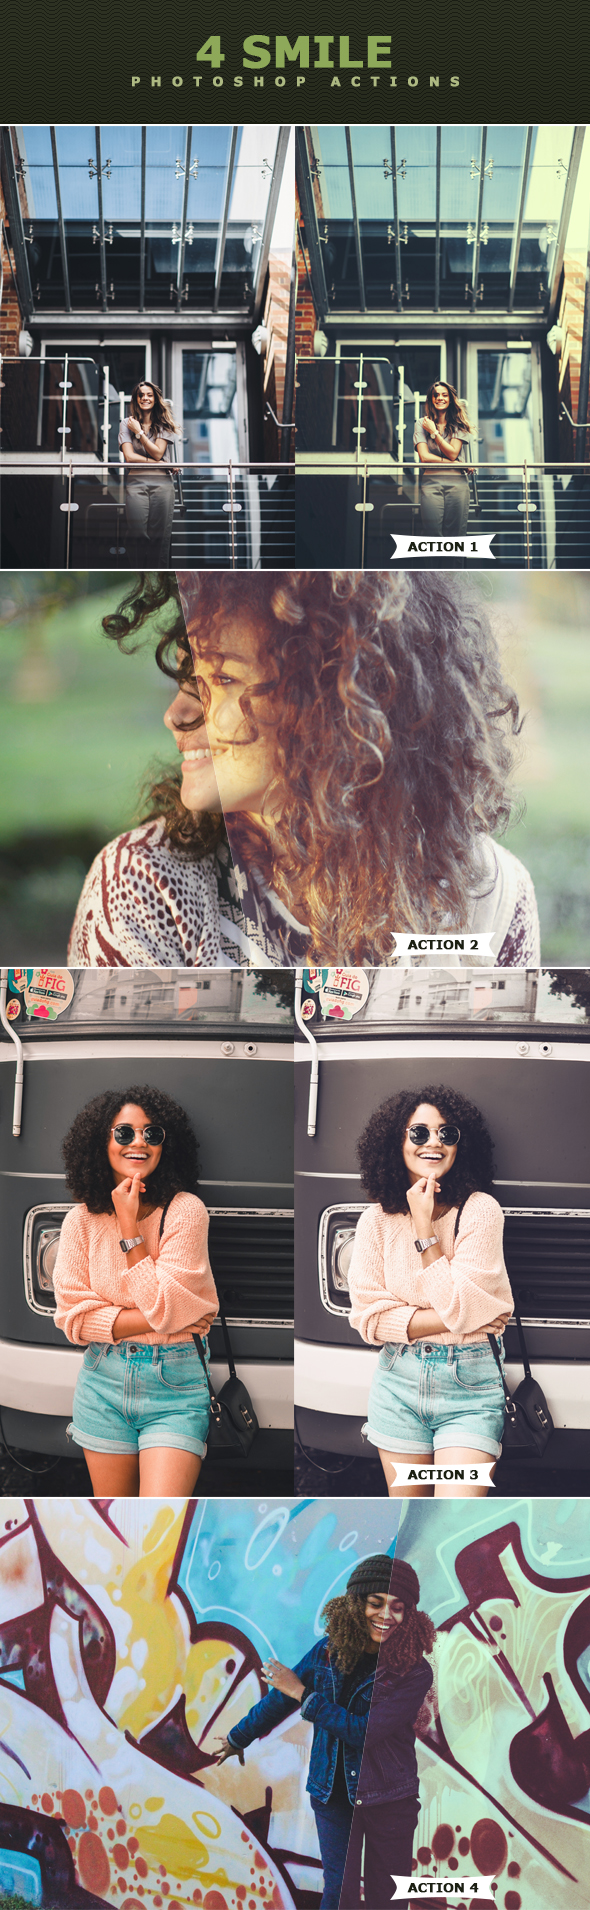 Smile Photoshop Actions - Photo Effects Actions